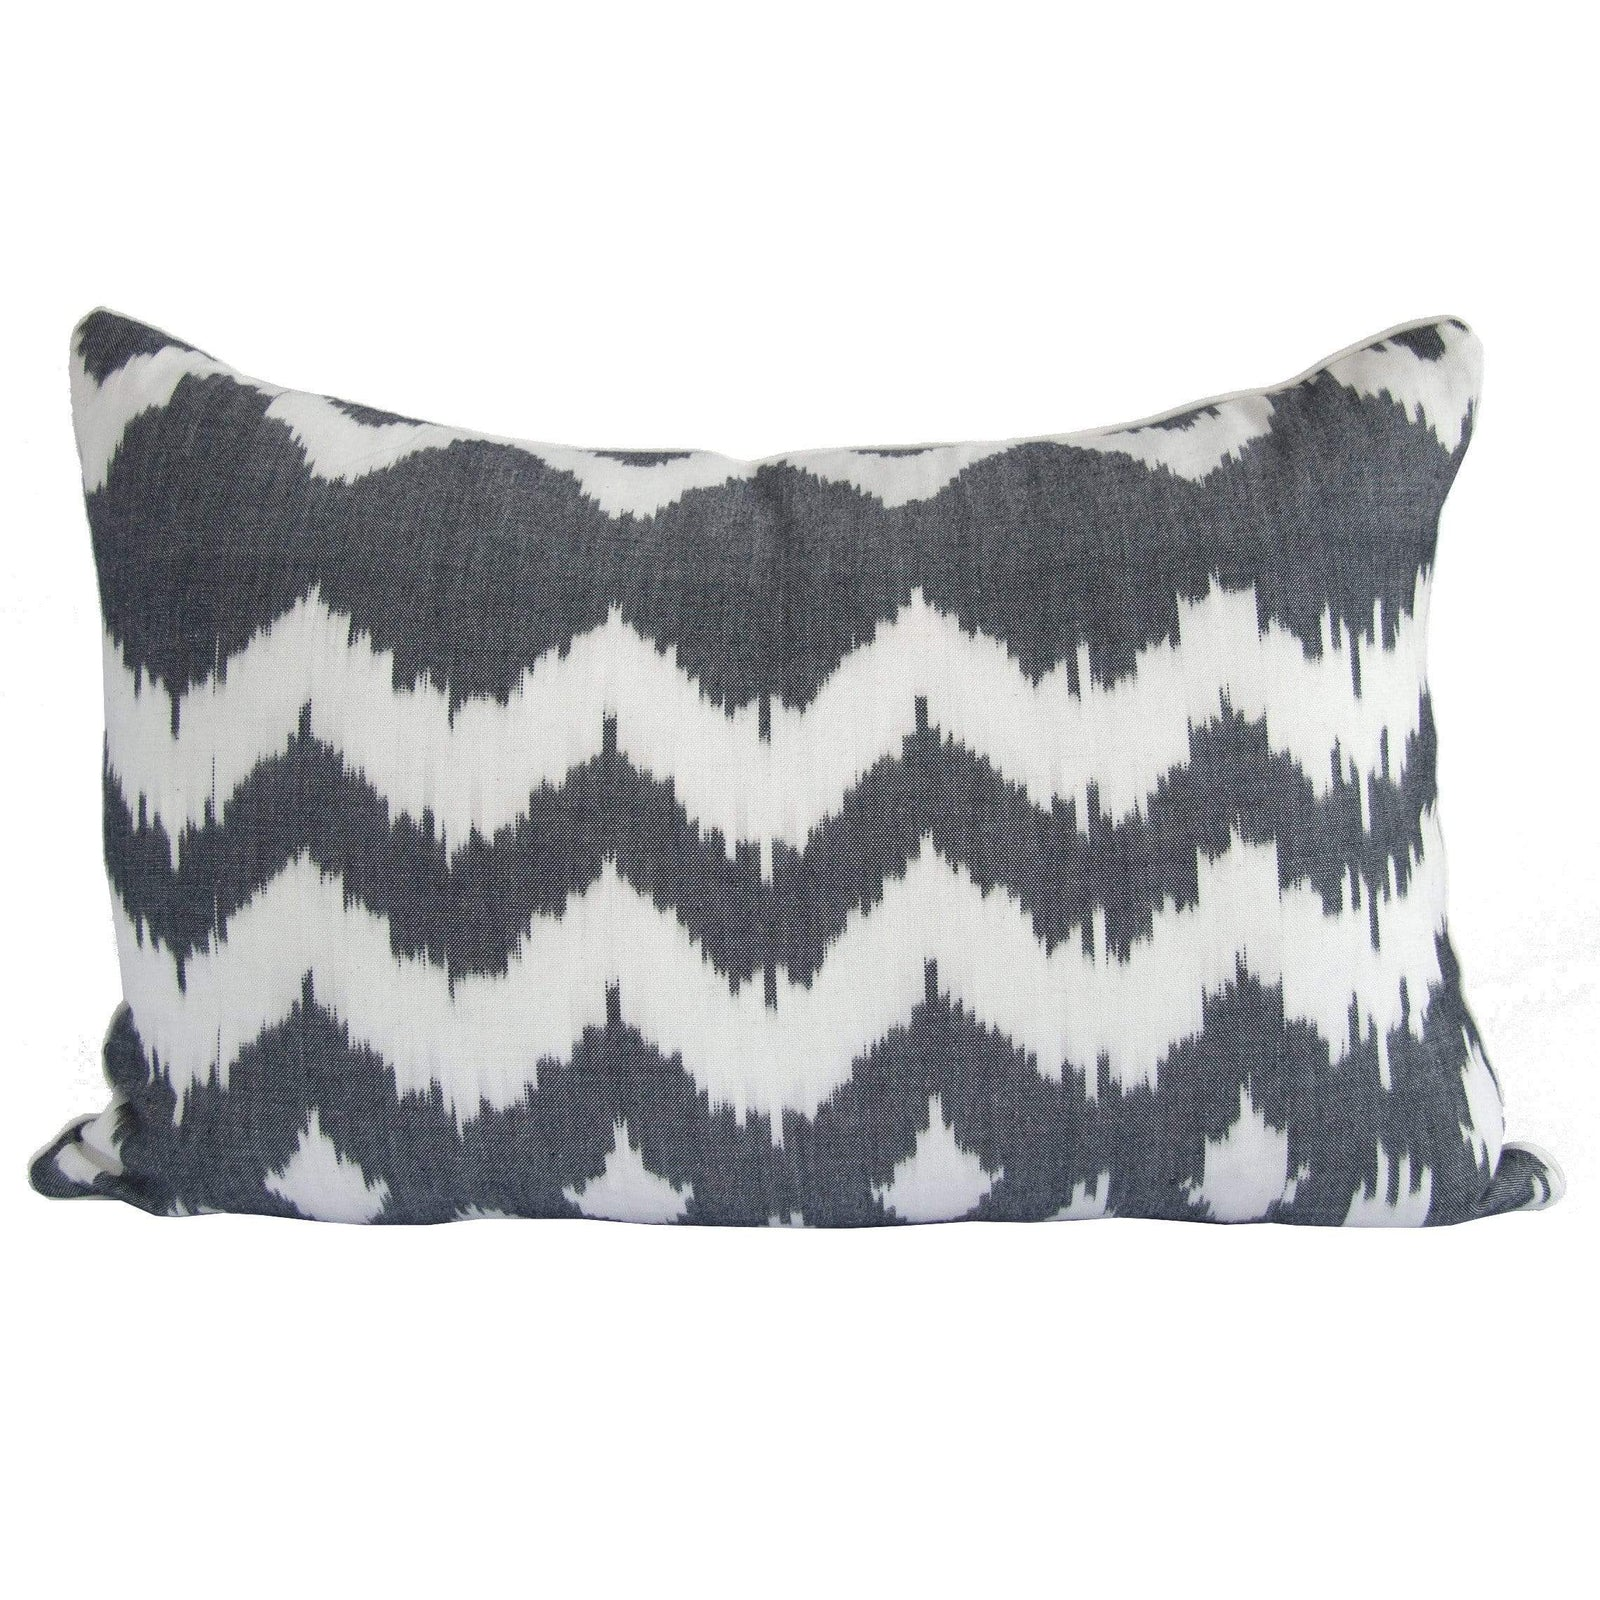 Tine K Home Pillow Charcoal Wave Ikat Pillow